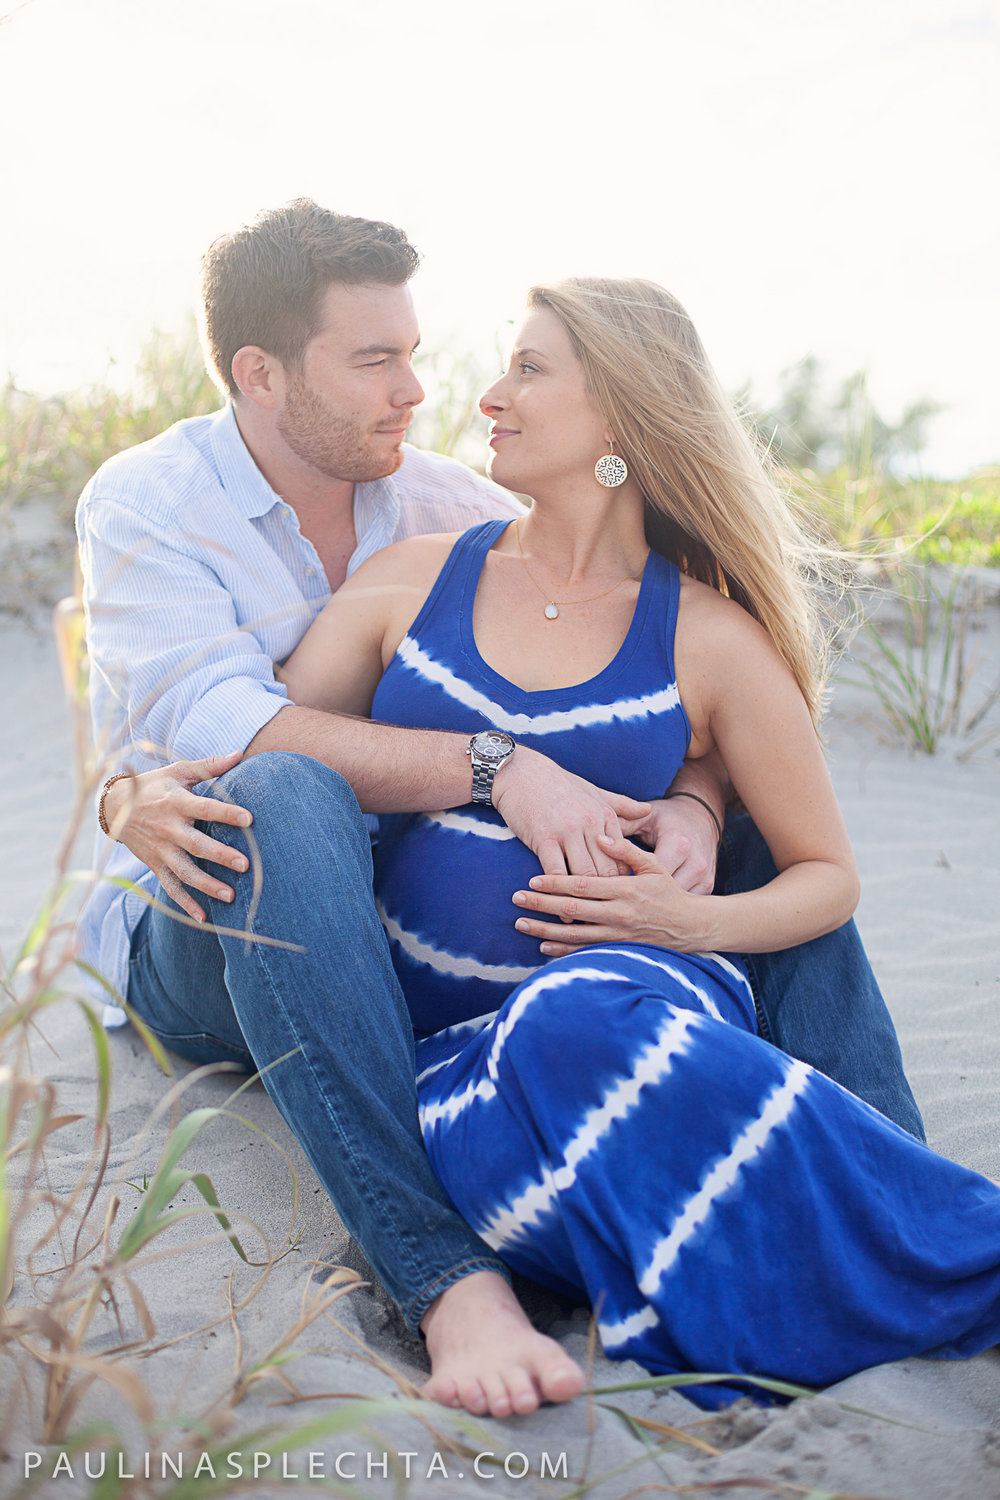 boca-raton-maternity-photographer-pregnancy-photos-shoot-ft-lauderdale-south-florida-gown-dress-newborn-west-palm-beach-delray-12.jpg